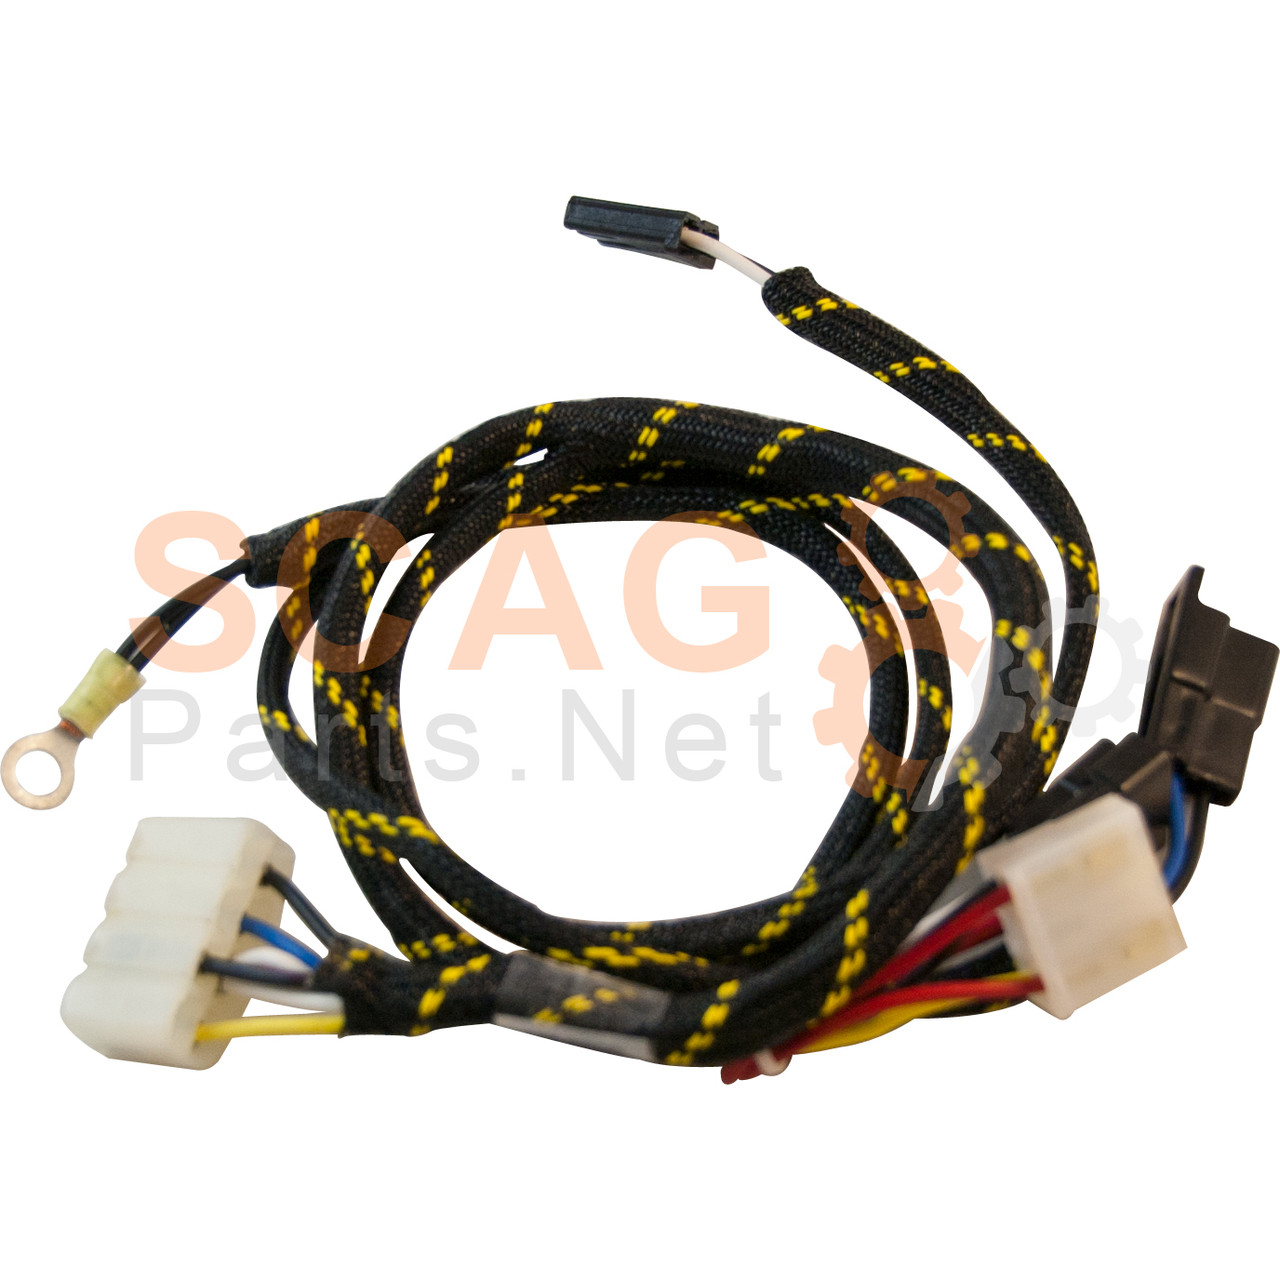 Sca Engine Wiring Harness -2004 Nissan Murano Fuse Diagram | Begeboy Wiring  Diagram Source